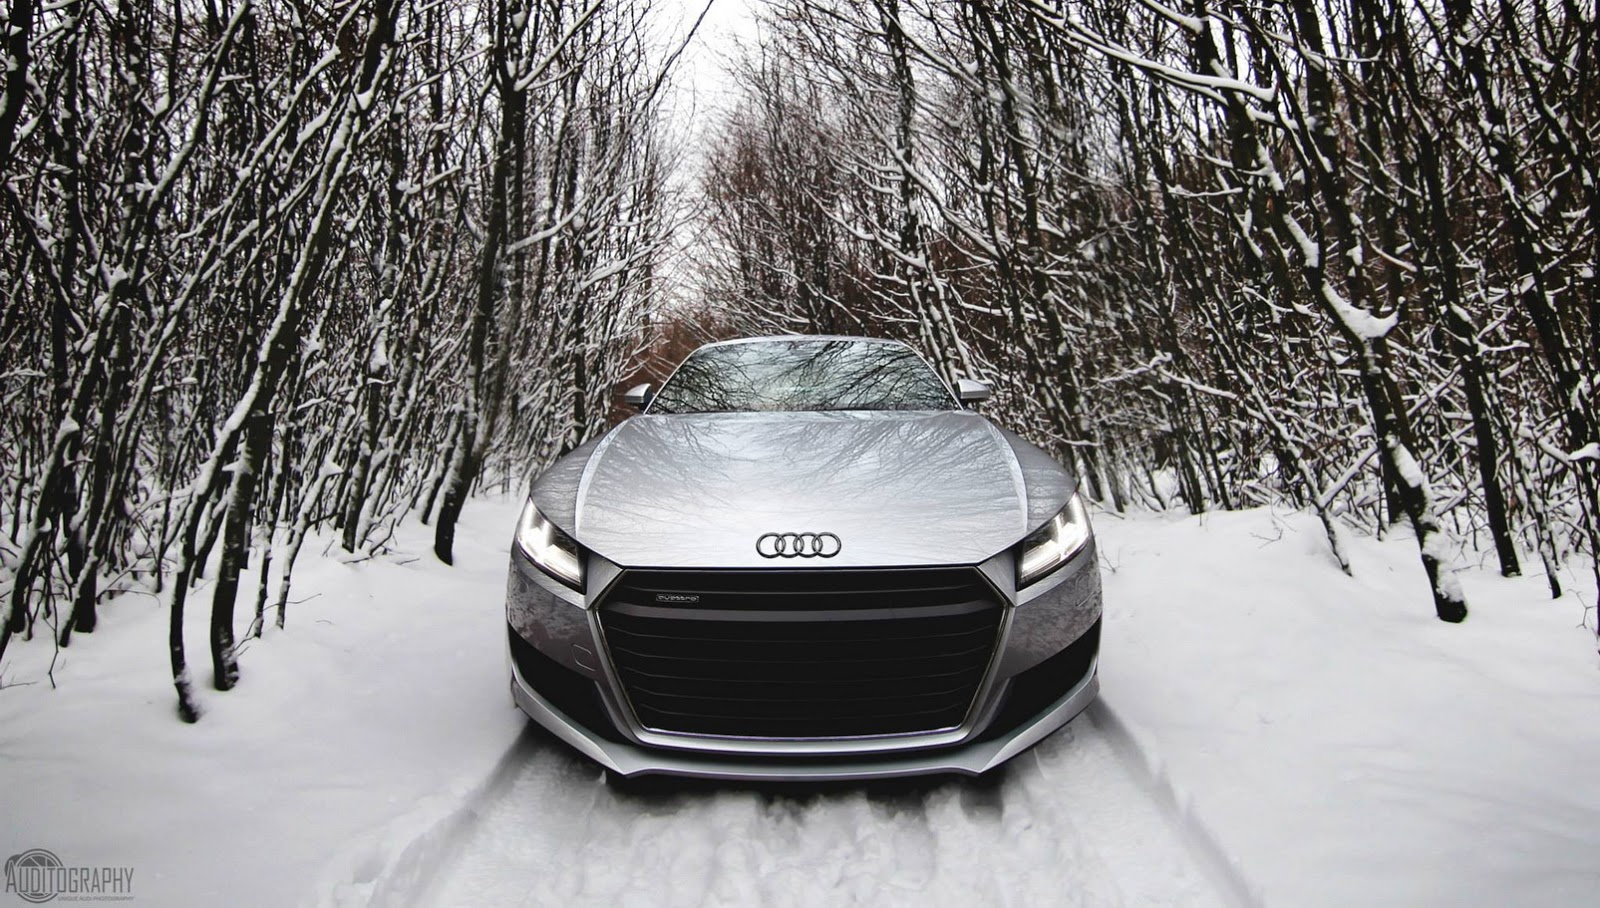 Solid Black Wallpaper 2015 Audi Tt Is The Perfect Snow Angel Carscoops